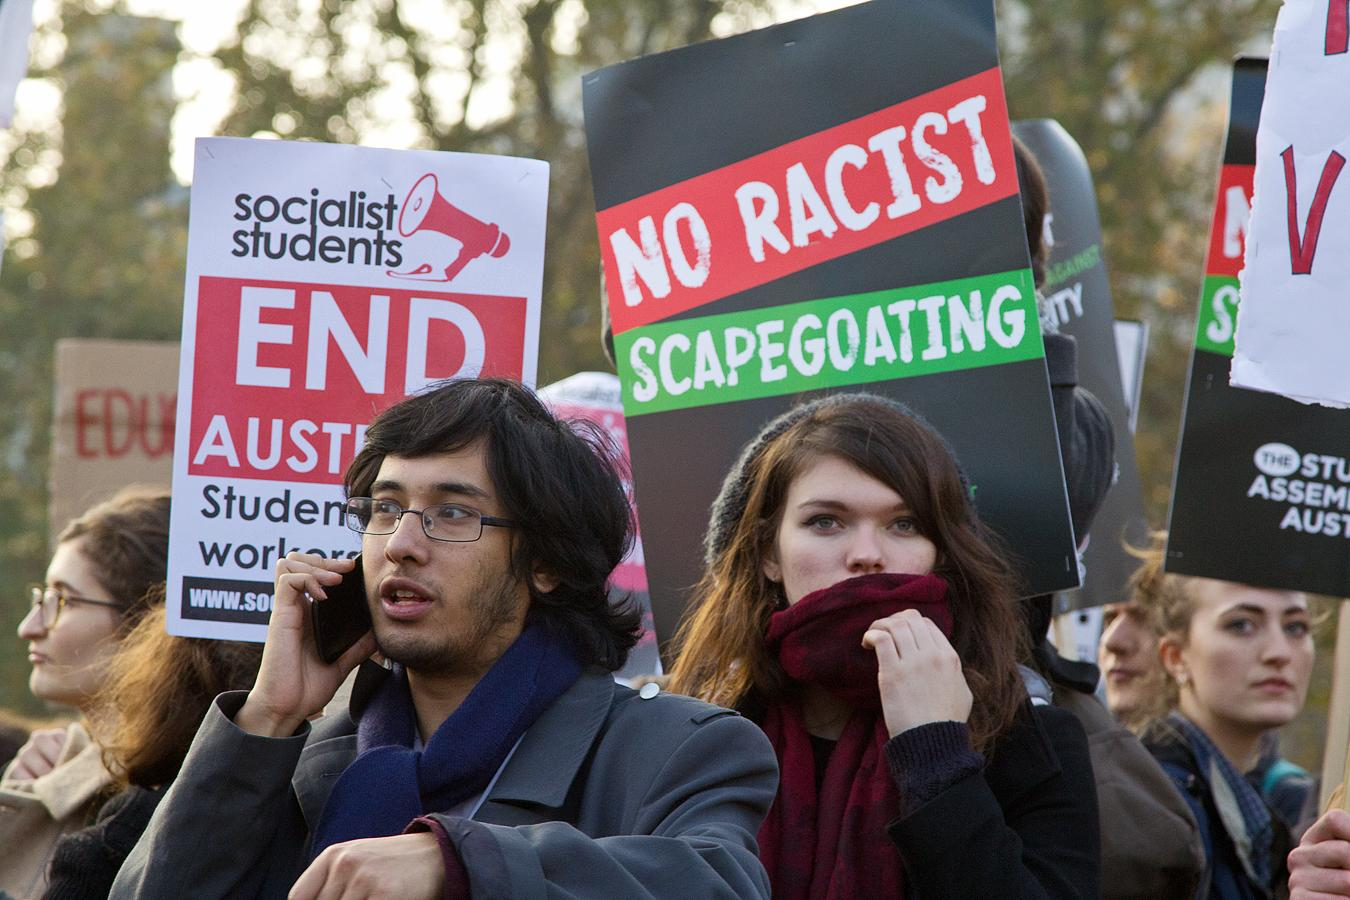 Student protest in 2014. Photo credit: flickr user Chris Beckett http://tinyurl.com/y9dpdkey Creative Commons license: https://creativecommons.org/licenses/by-nc-nd/2.0/